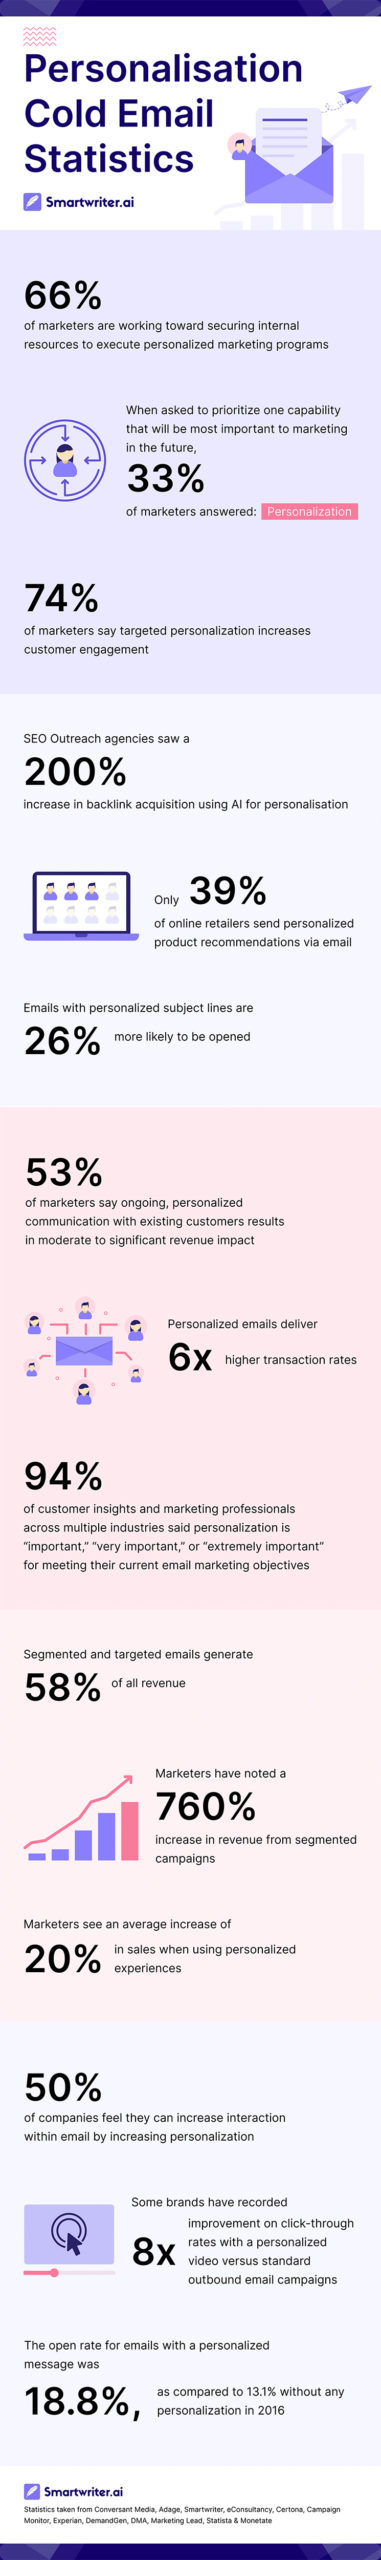 personalization cold email statistics